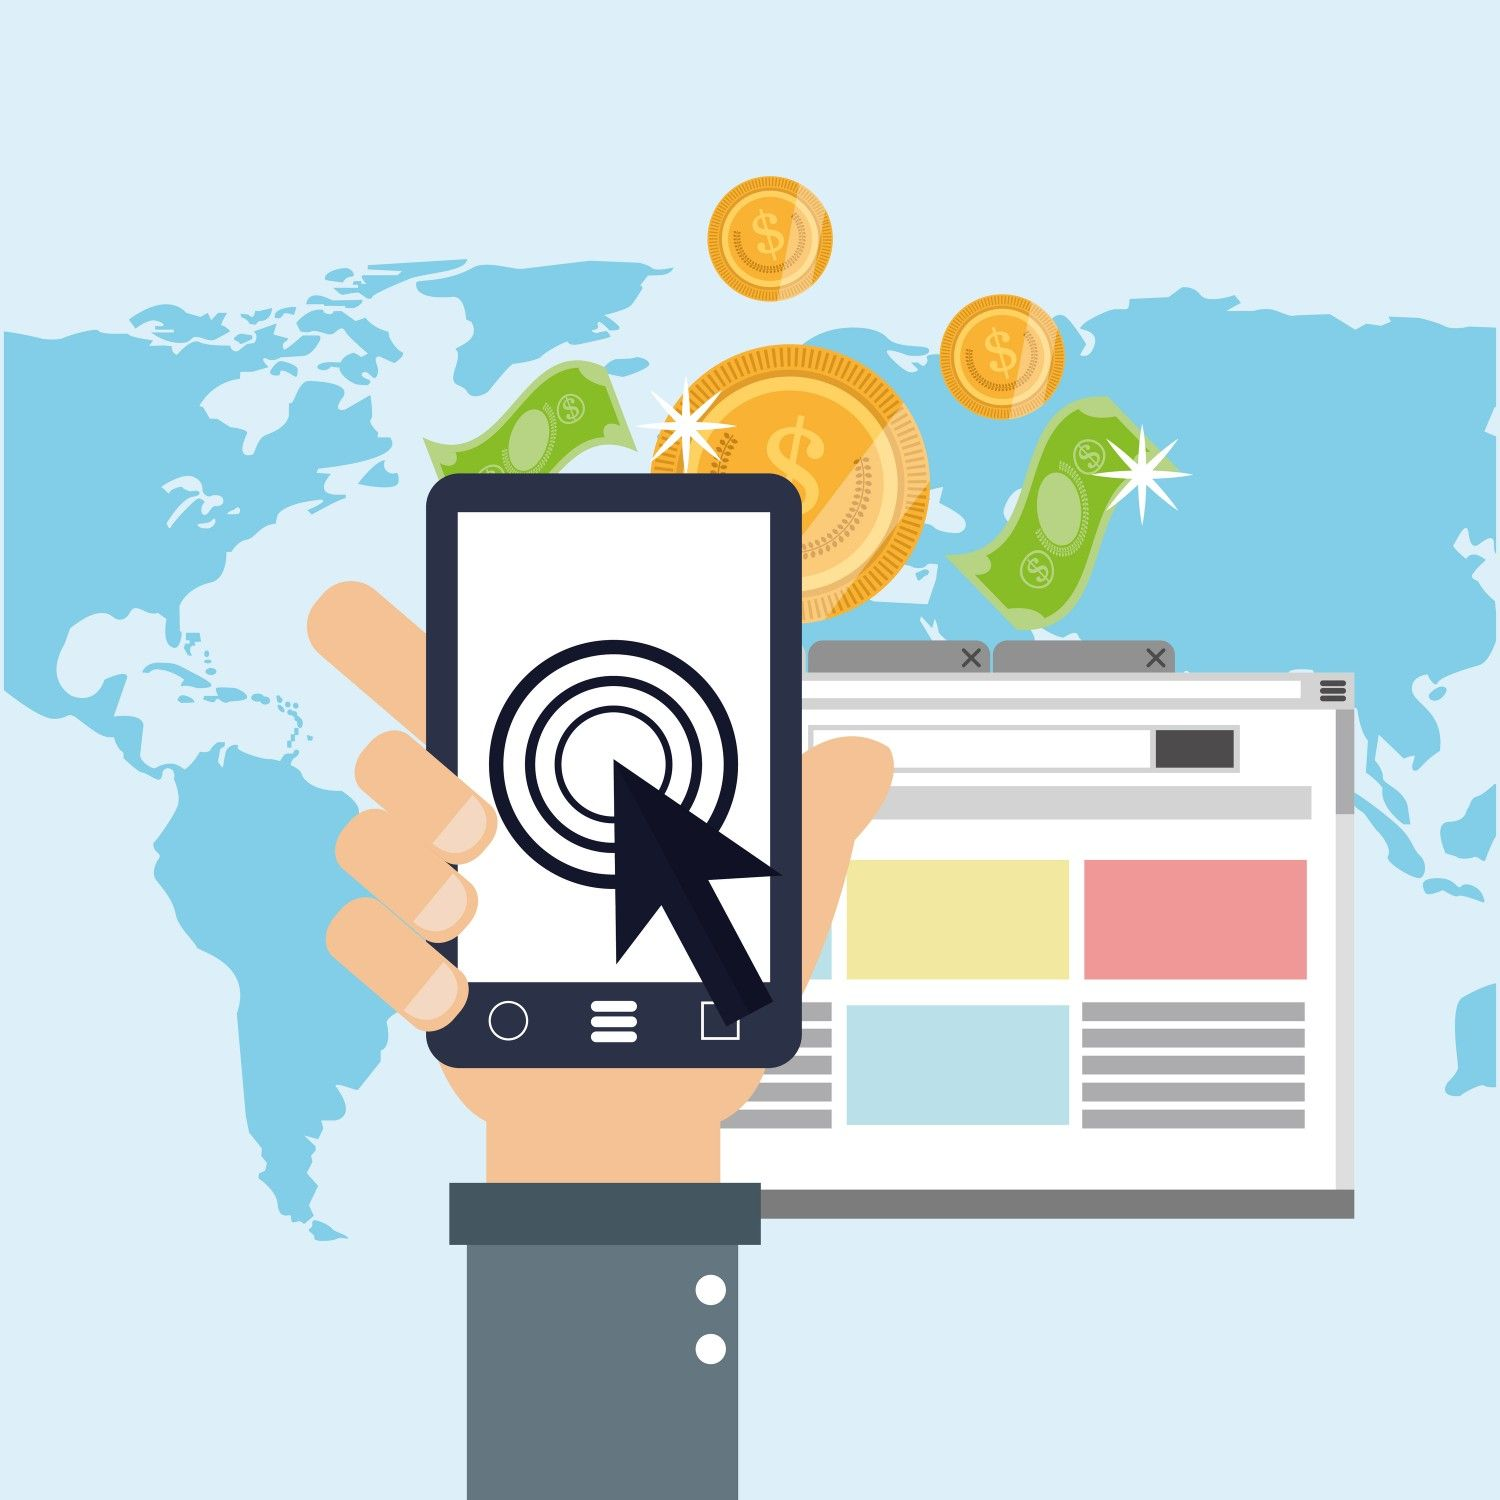 Build yourself a sound designed mobile app to reach new customers build yourself a sound designed mobile app to reach new customers and improve brand image solutioingenieria Image collections